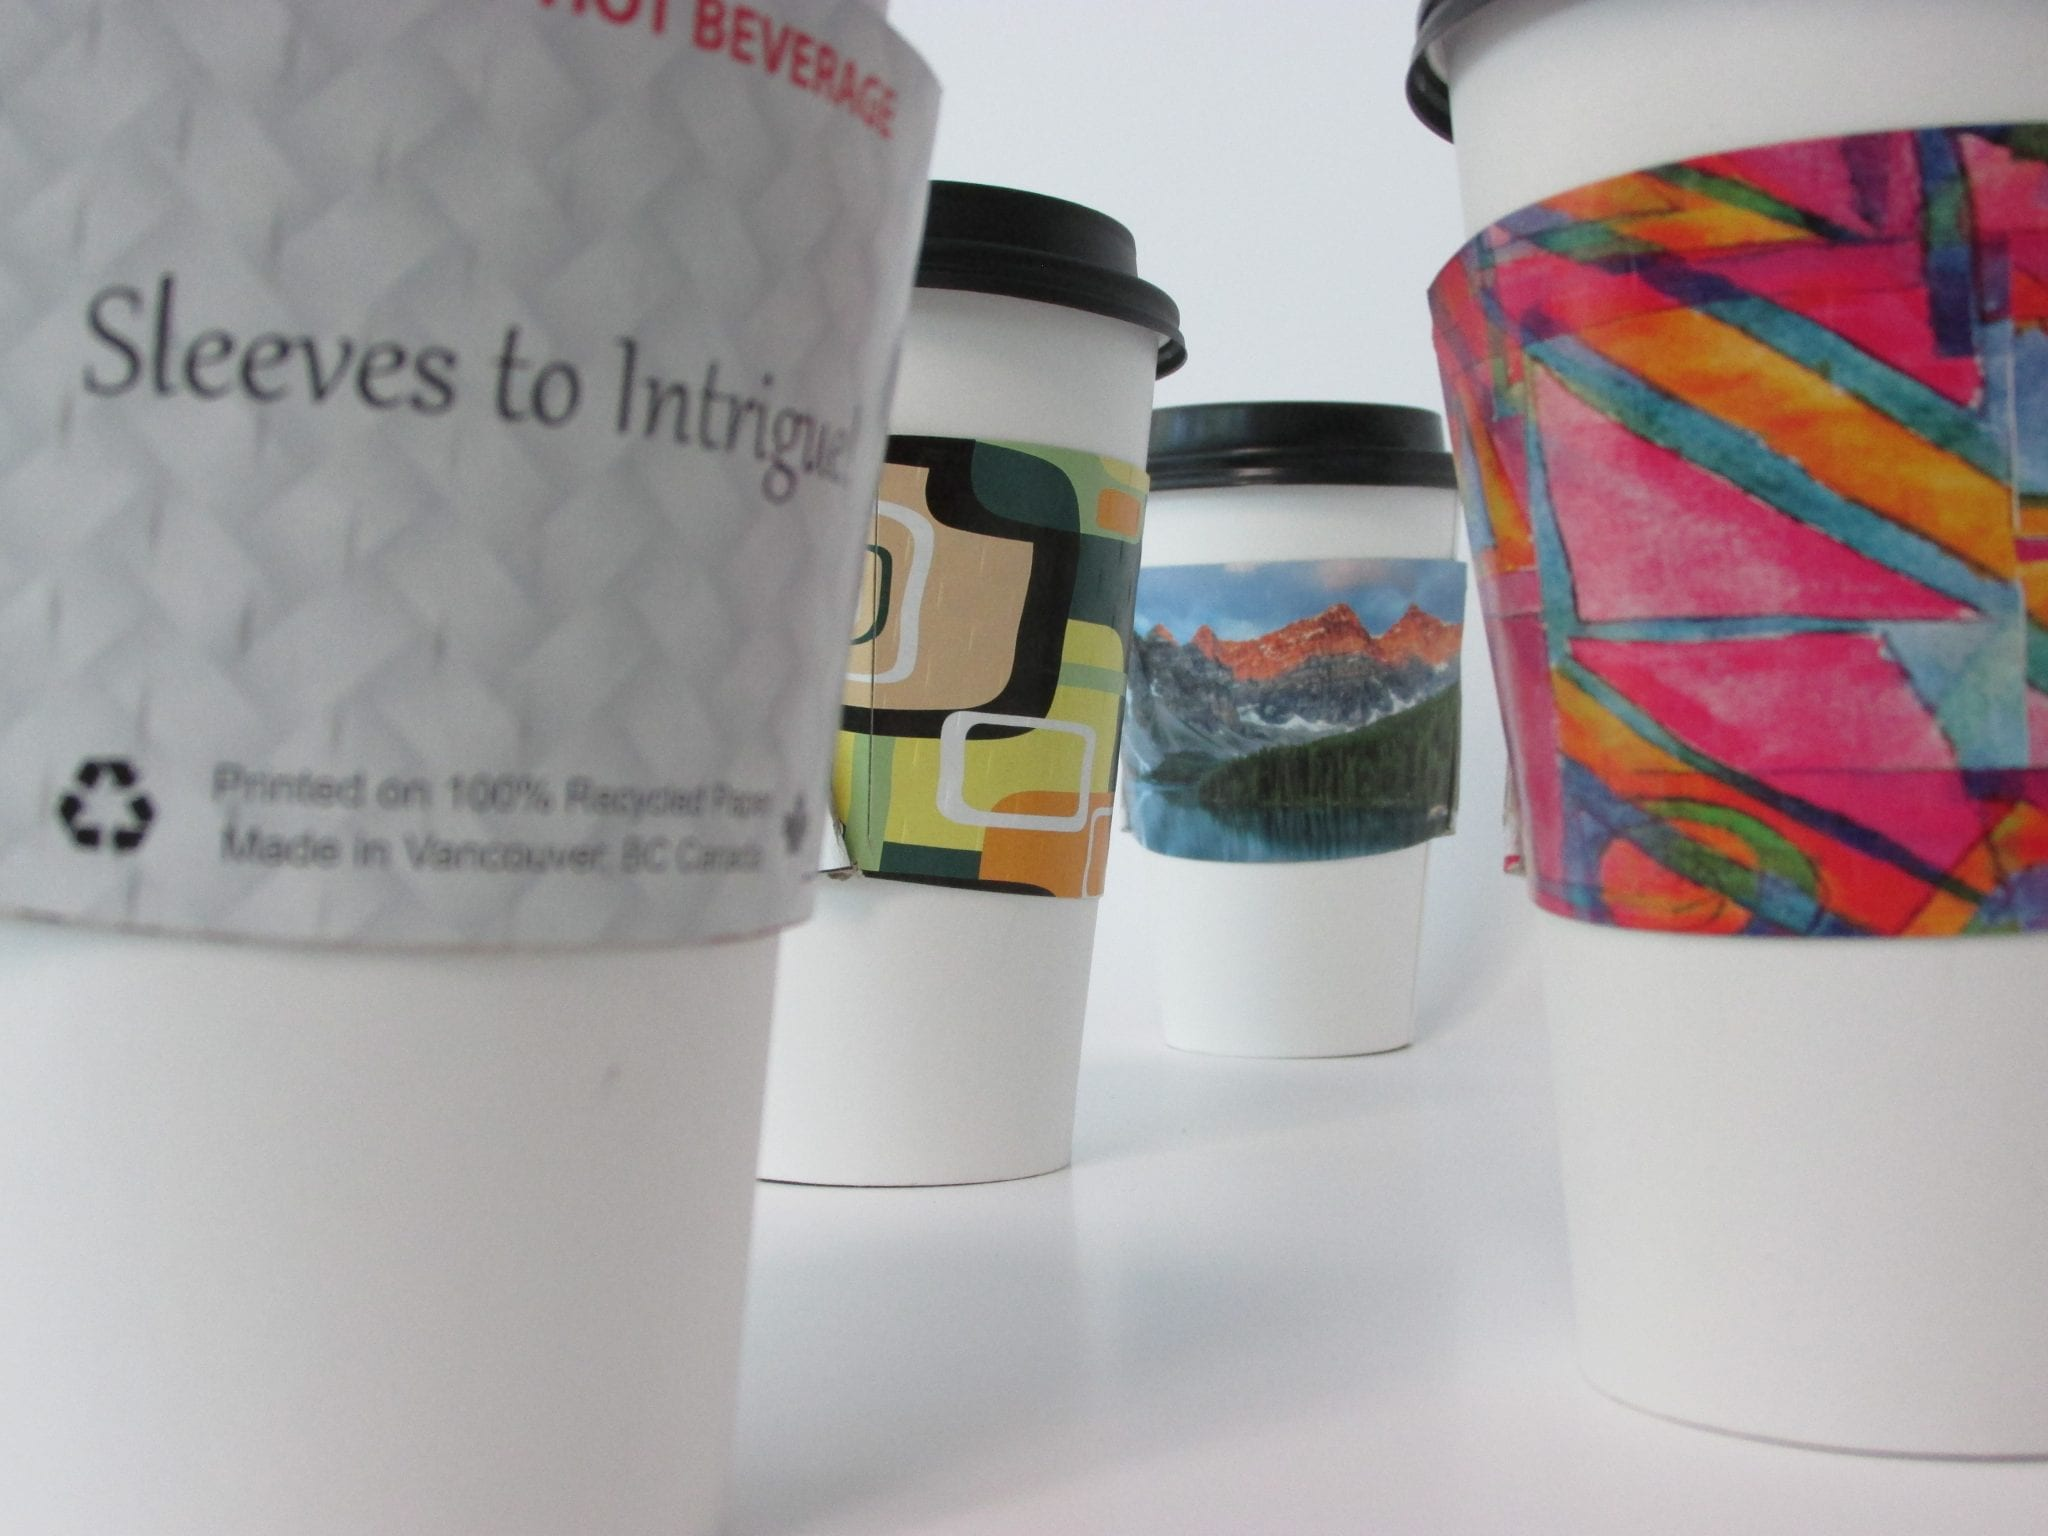 coffee cup sleeves to intrigue